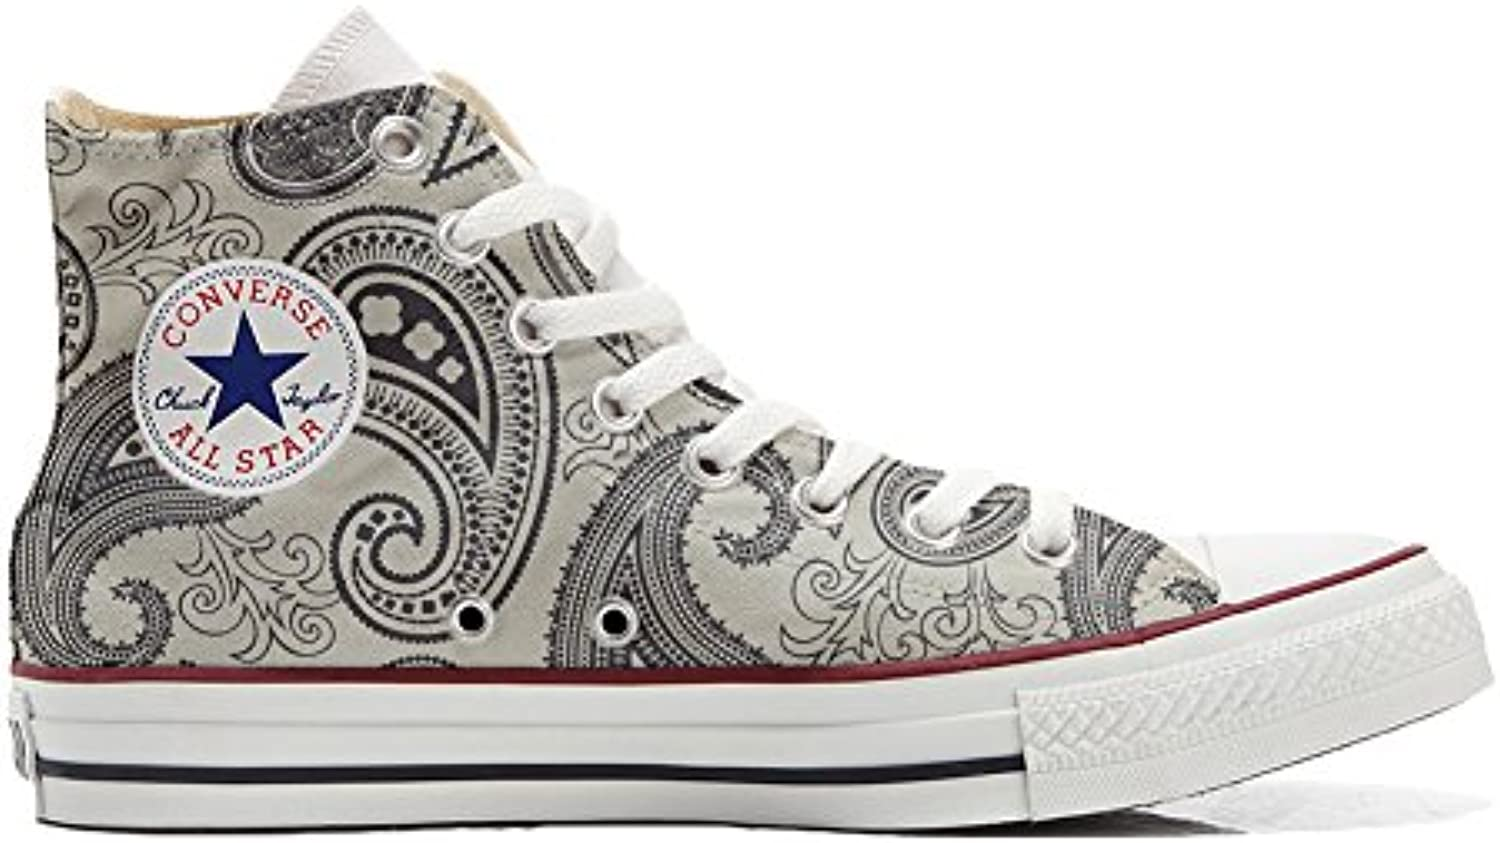 Converse All Star Zapatos Personalizados Unisex (Producto Handmade) Slim Butterfly -